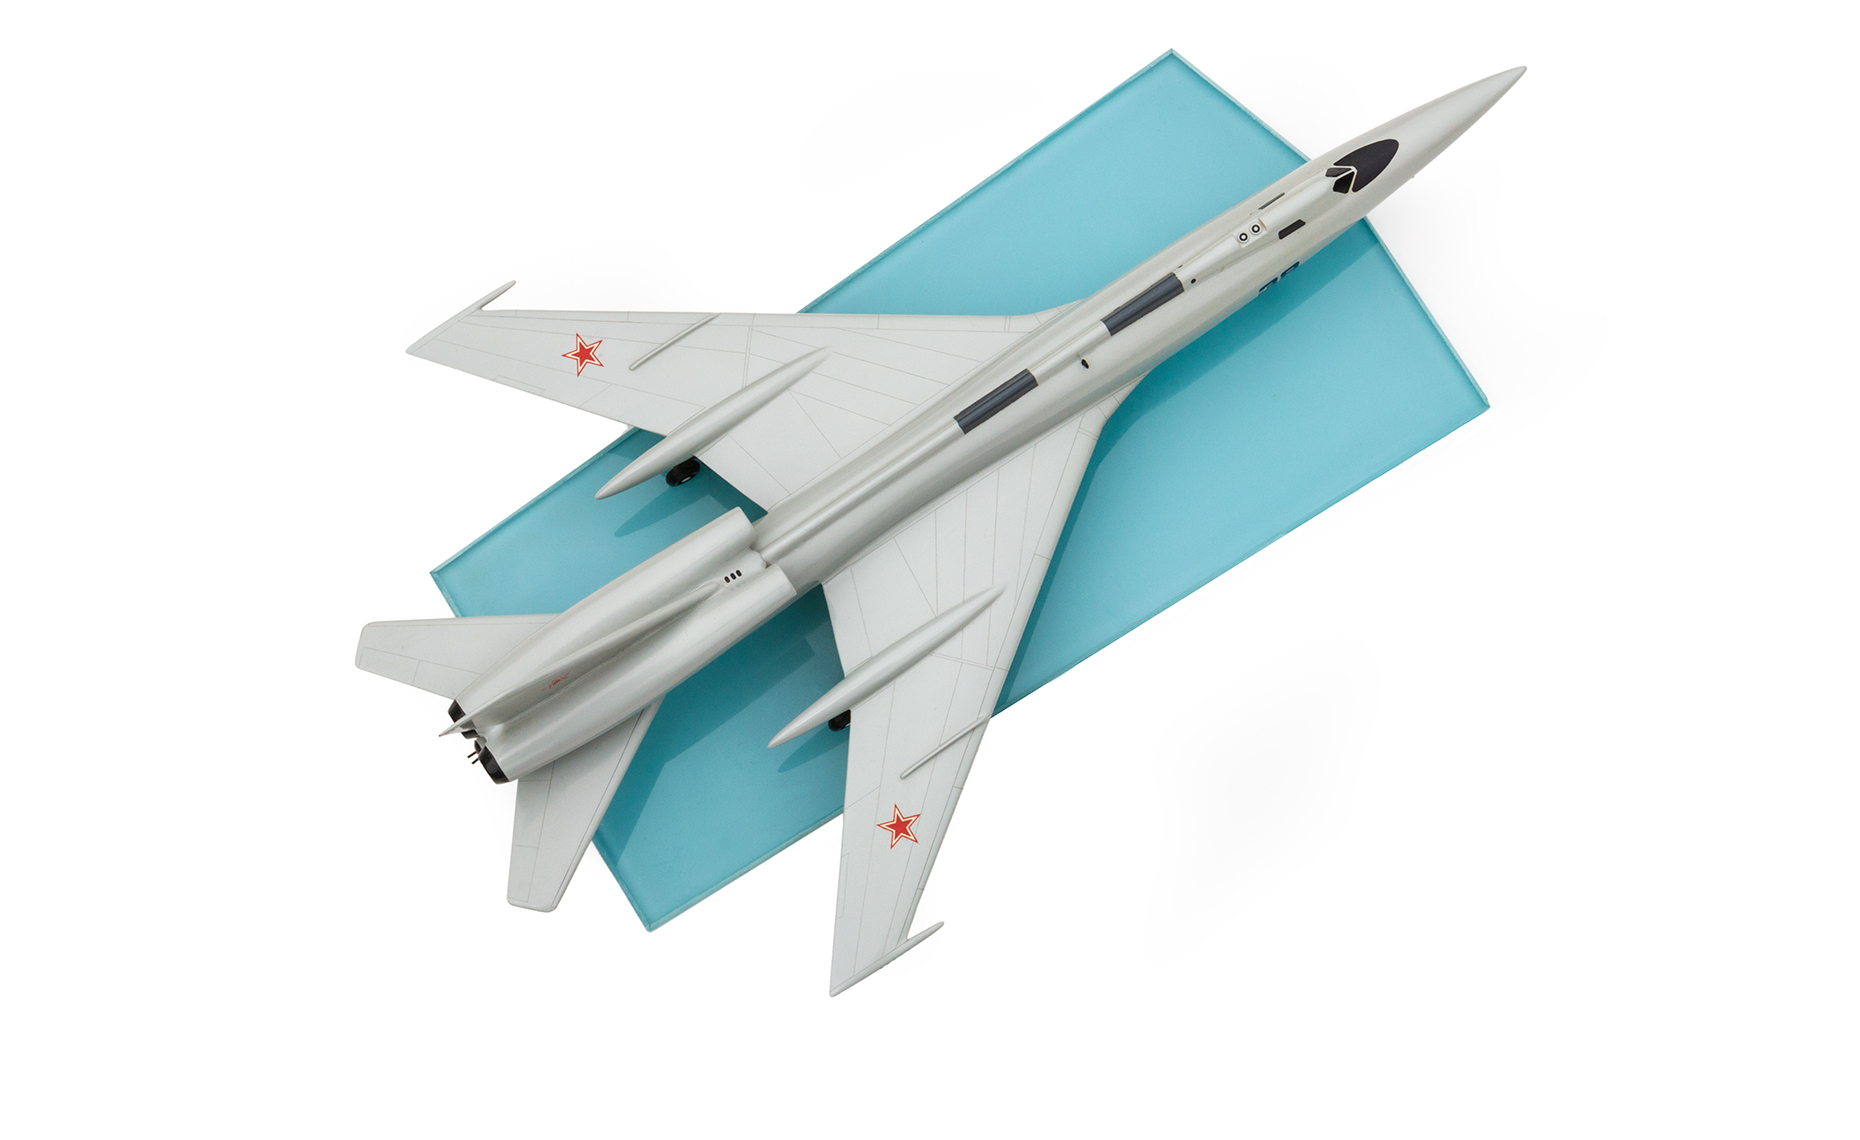 Tupolev Tu-22 Blinder model